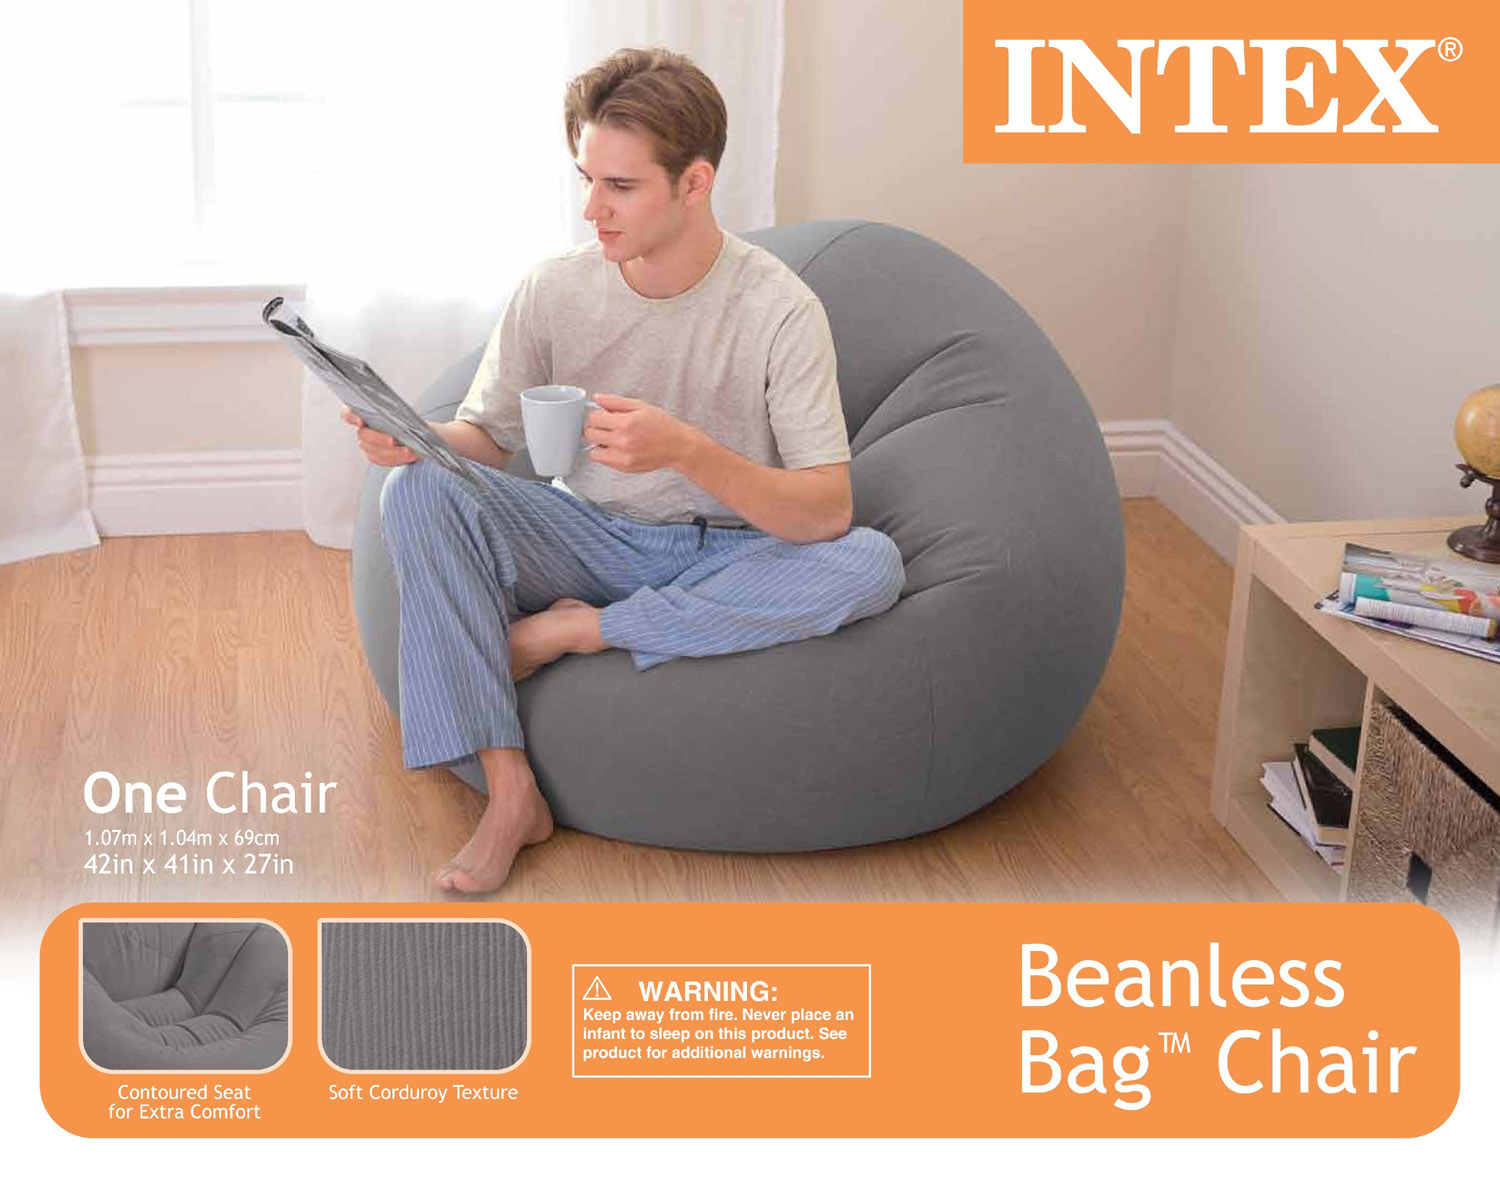 Fantastic Intex Beanless Bag Chair Walmart Com Squirreltailoven Fun Painted Chair Ideas Images Squirreltailovenorg